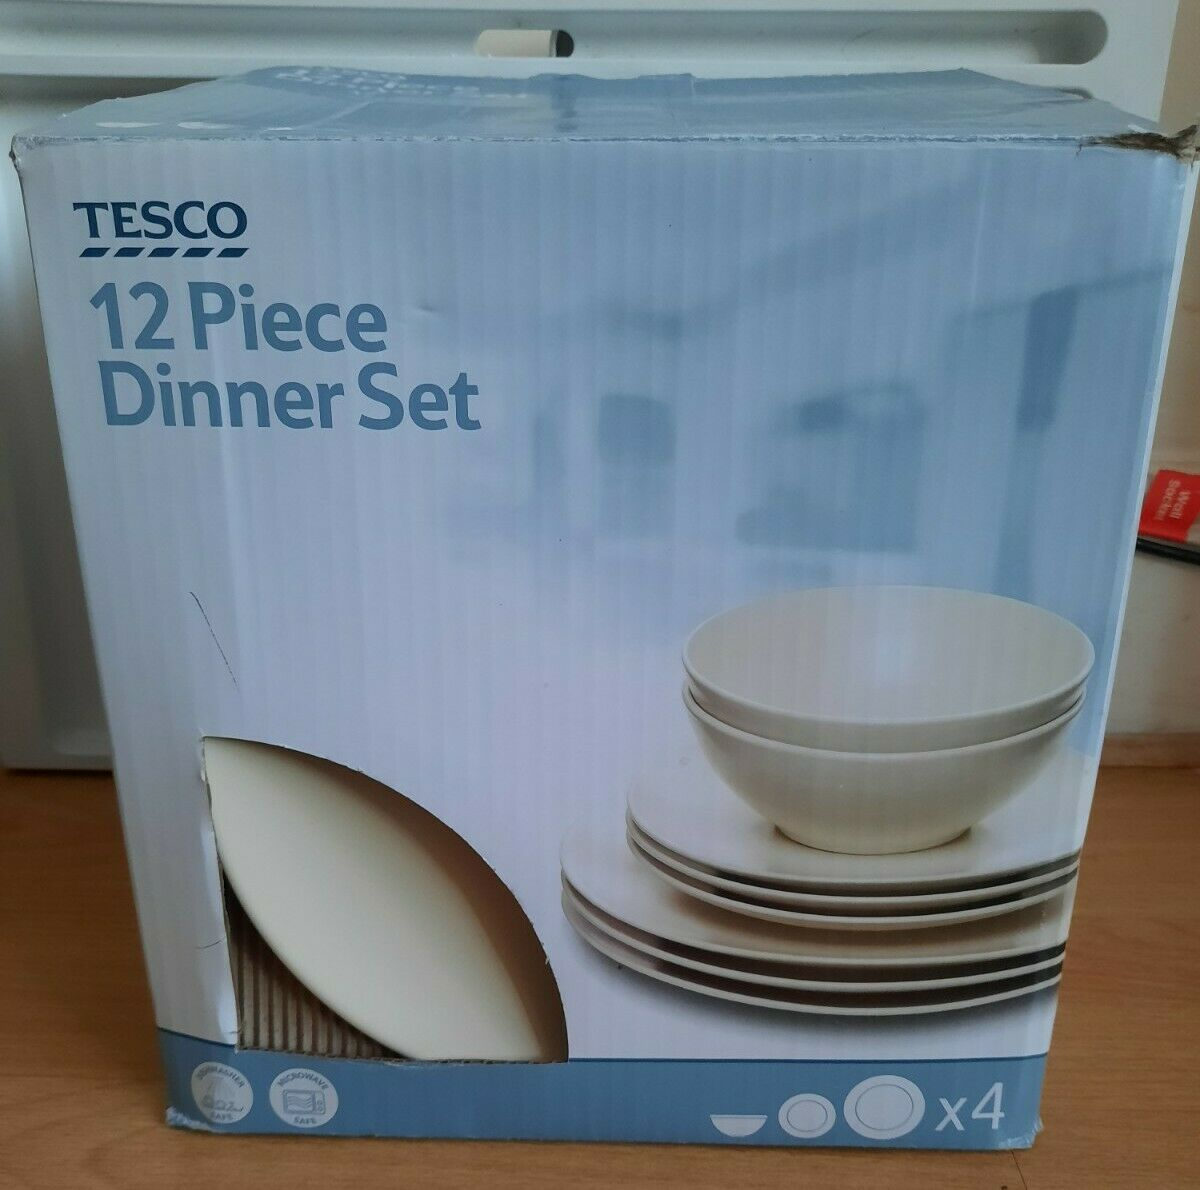 Tesco 11 Piece Dinner Set good used,complete